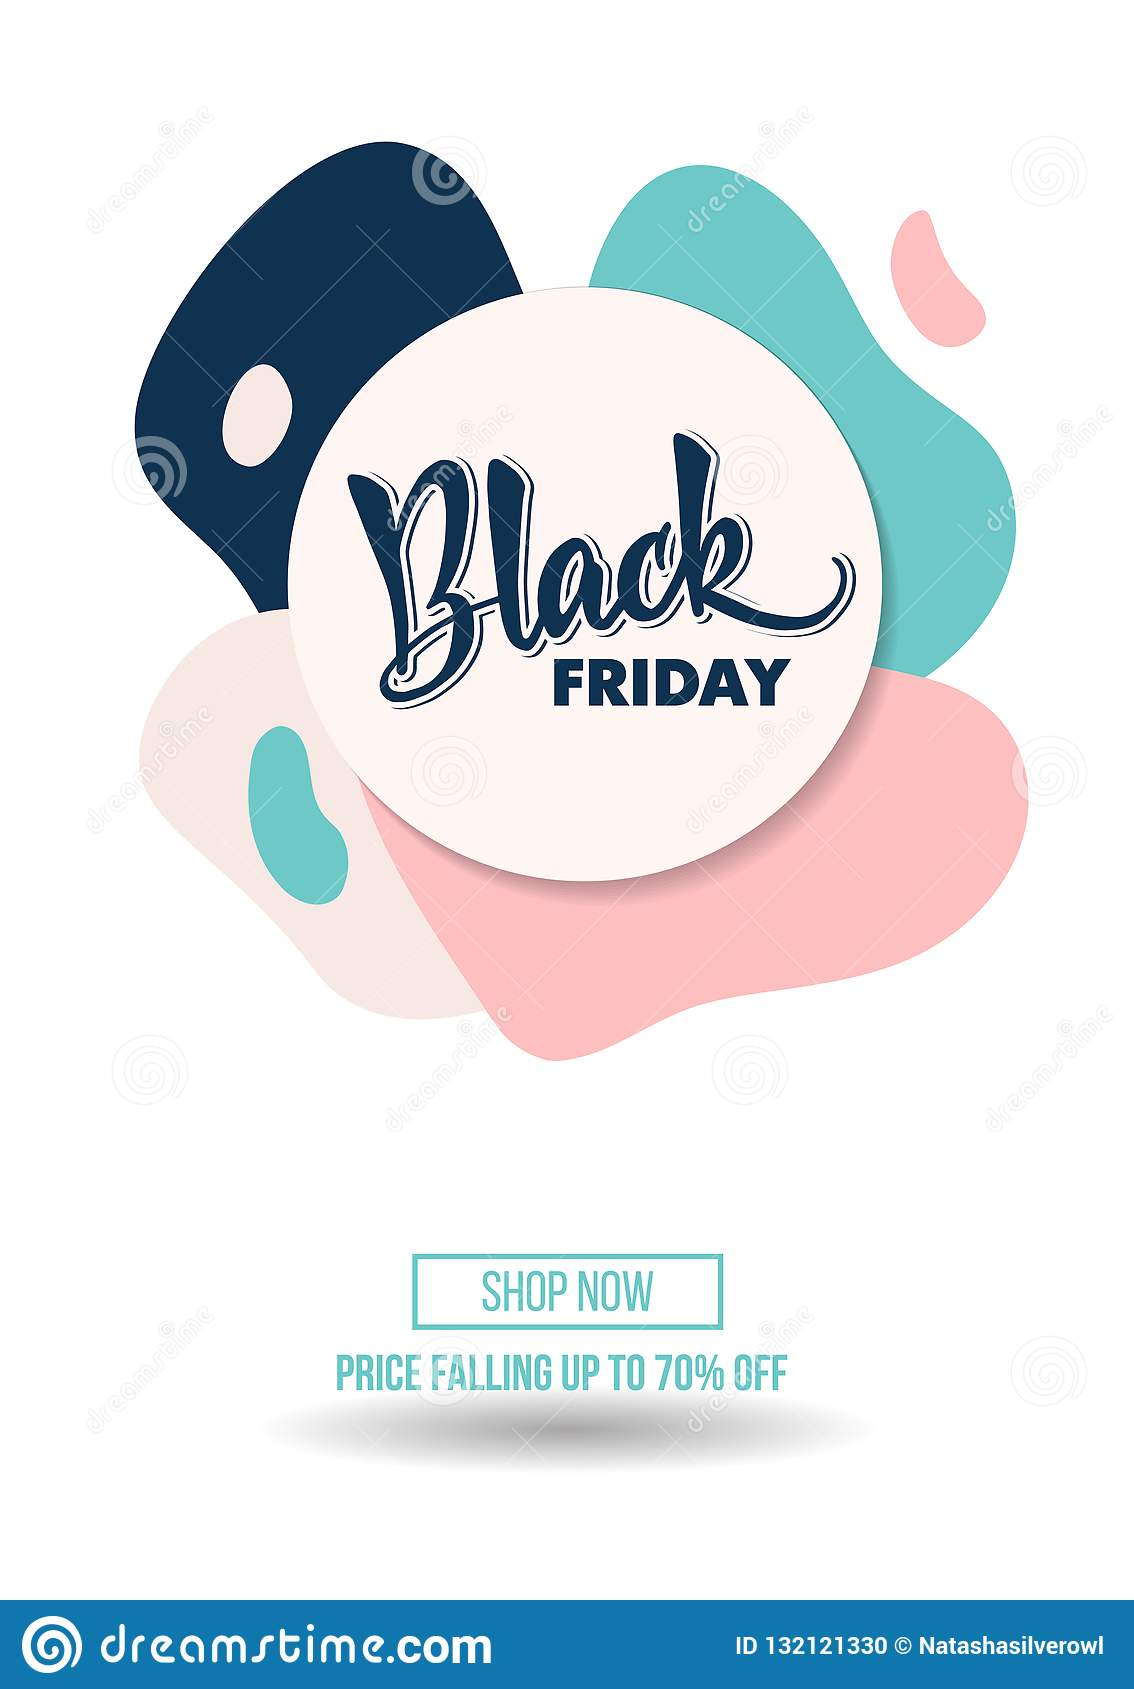 Black Friday sale discount promo offer poster or advertising fly